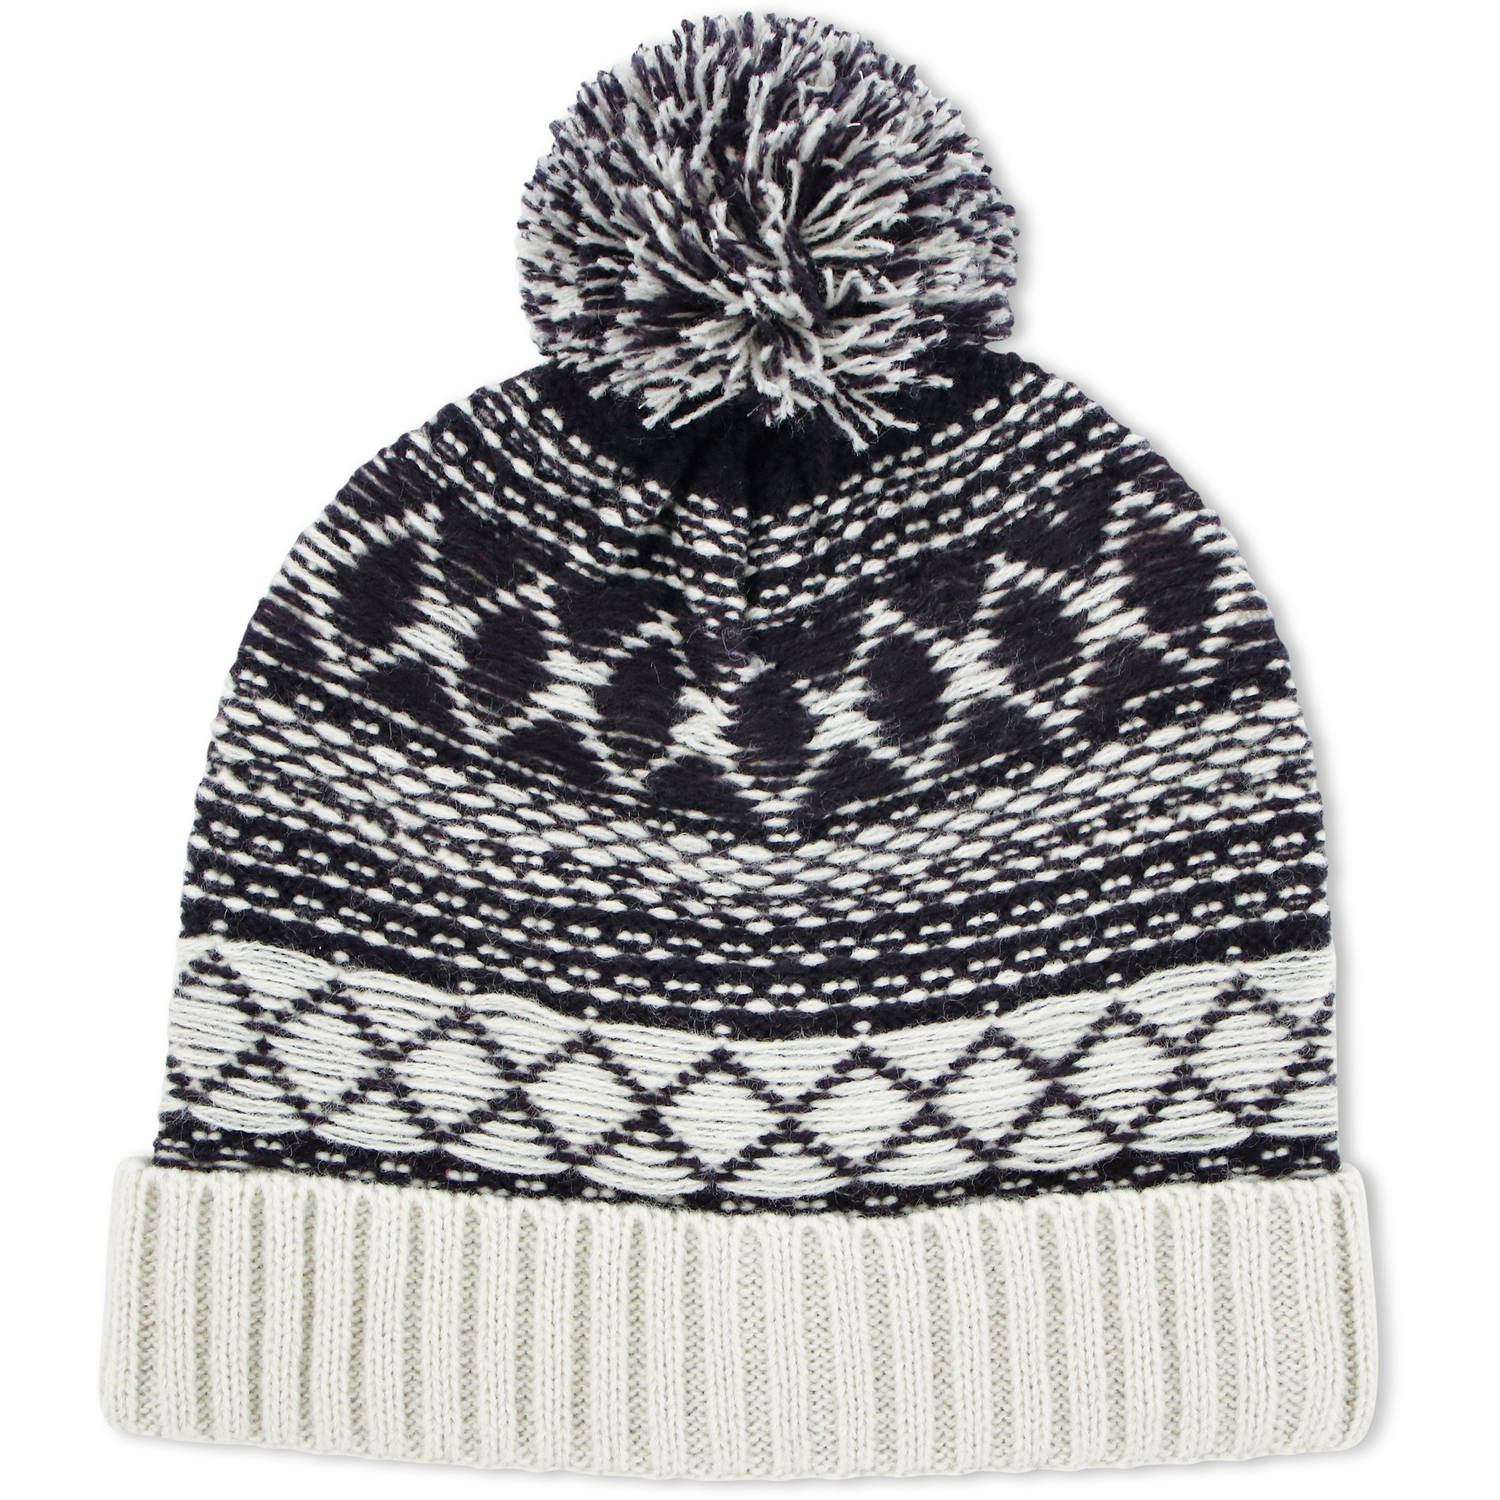 Image of ABG Accessories Big Boys Acrylic Knit Winter Cuffed Beanie Hat With Yarn Pom